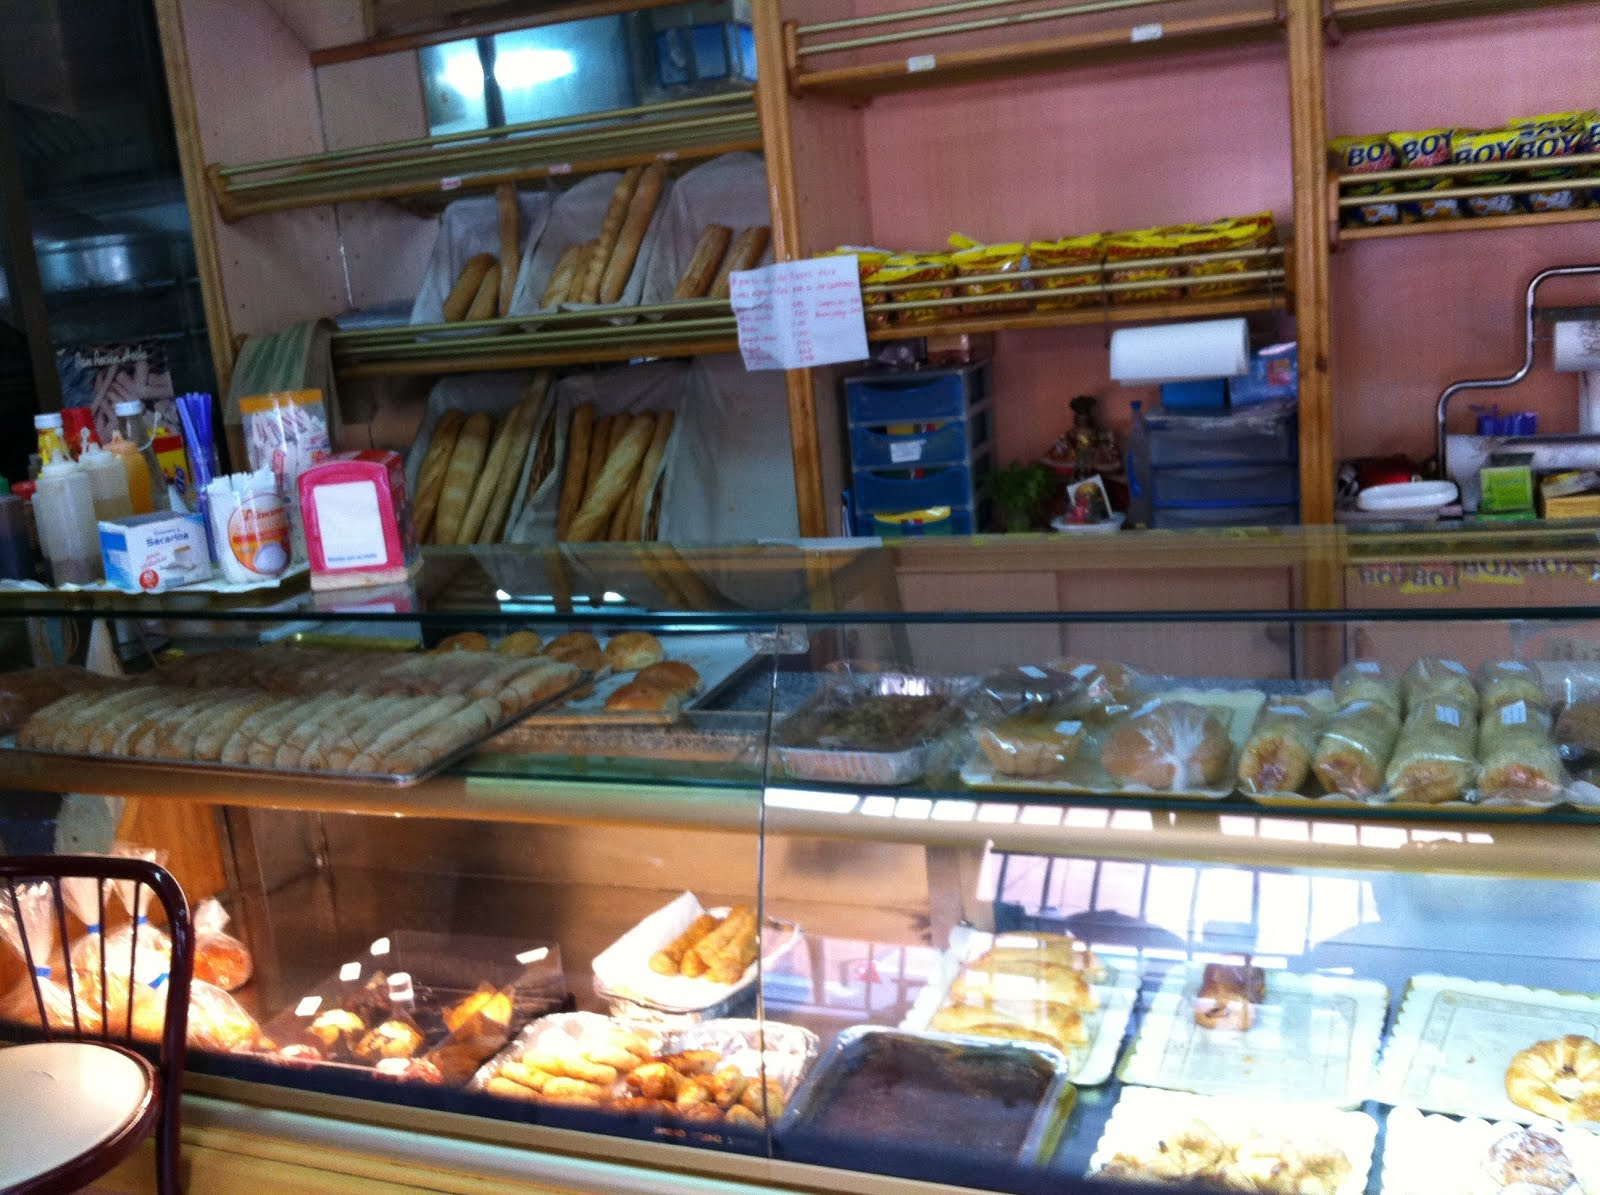 Kakanin business - Baguettes Croissants Cupcakes Palmeras And Spanish Empanadas Share The Display Case With Our Beloved Pan De Sal Spanish Bread Kakanin Sa Lihia And